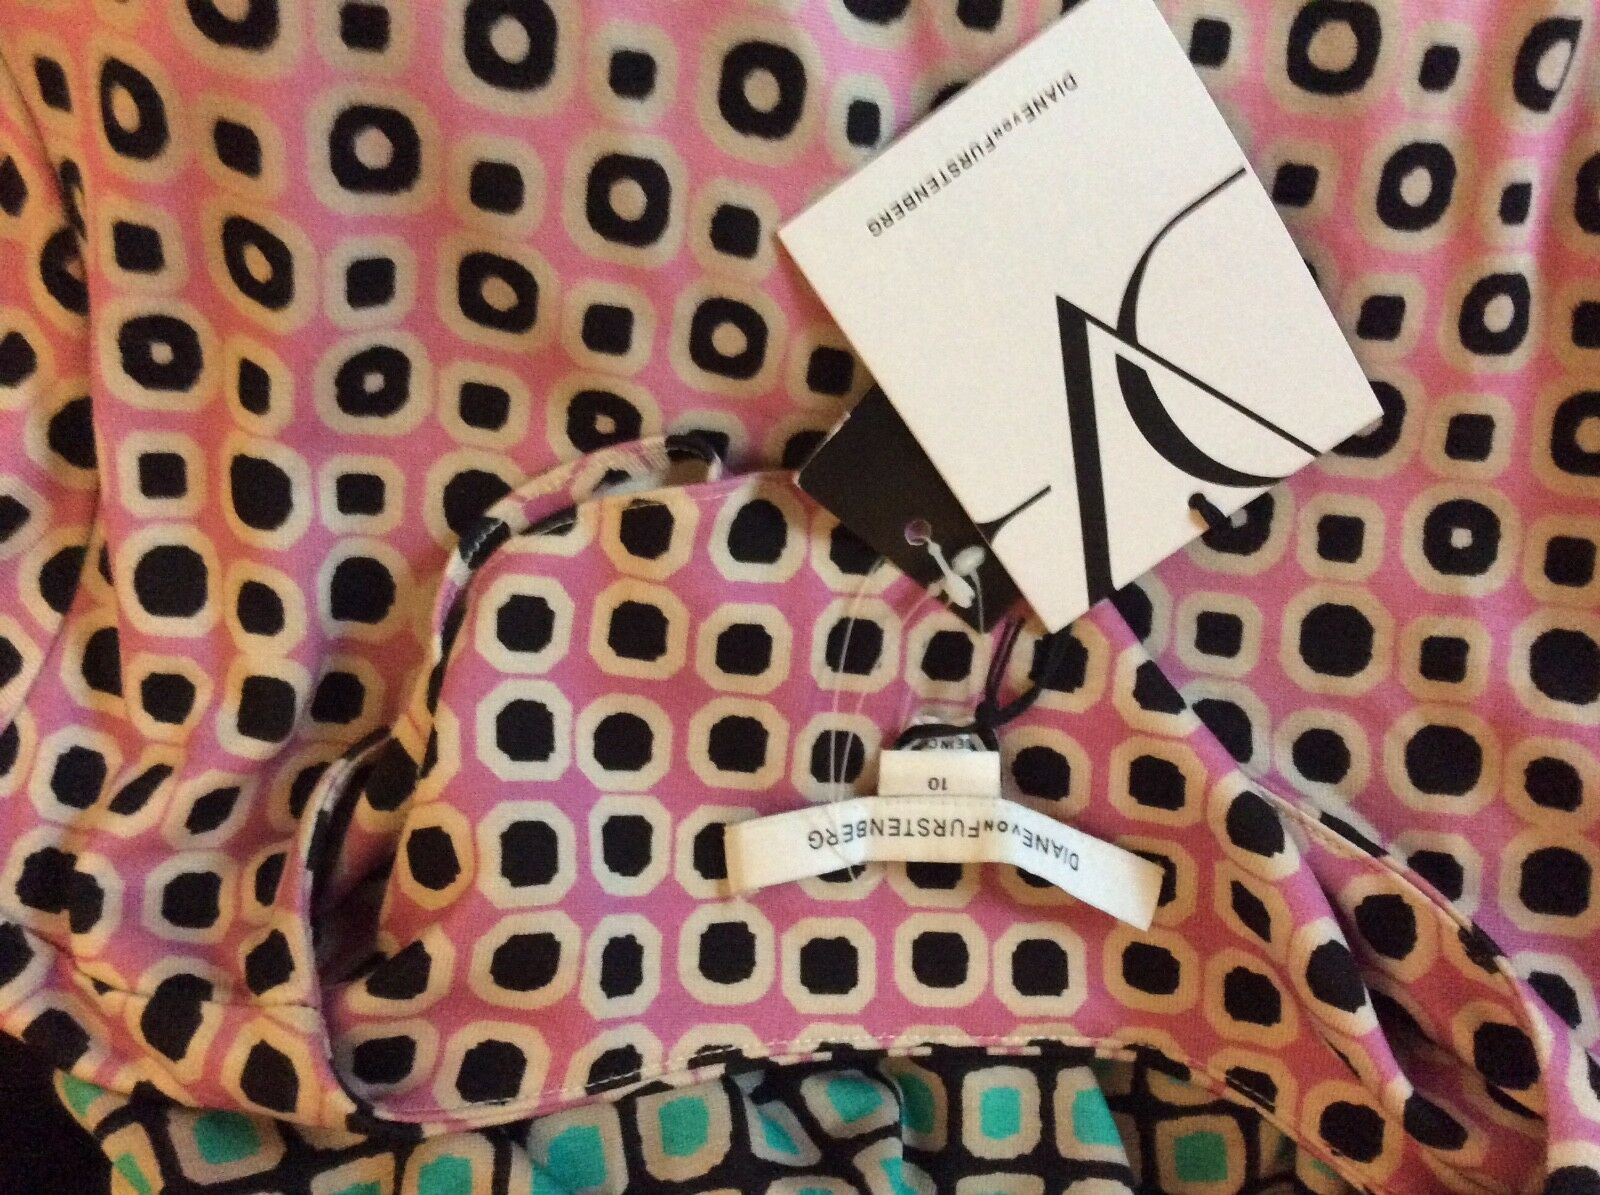 DIANE VON FURSTENBERG FURSTENBERG FURSTENBERG Zoe Fouldade Ombre Silk Dress US10 UK14 SALE REDUCED 4a73ad